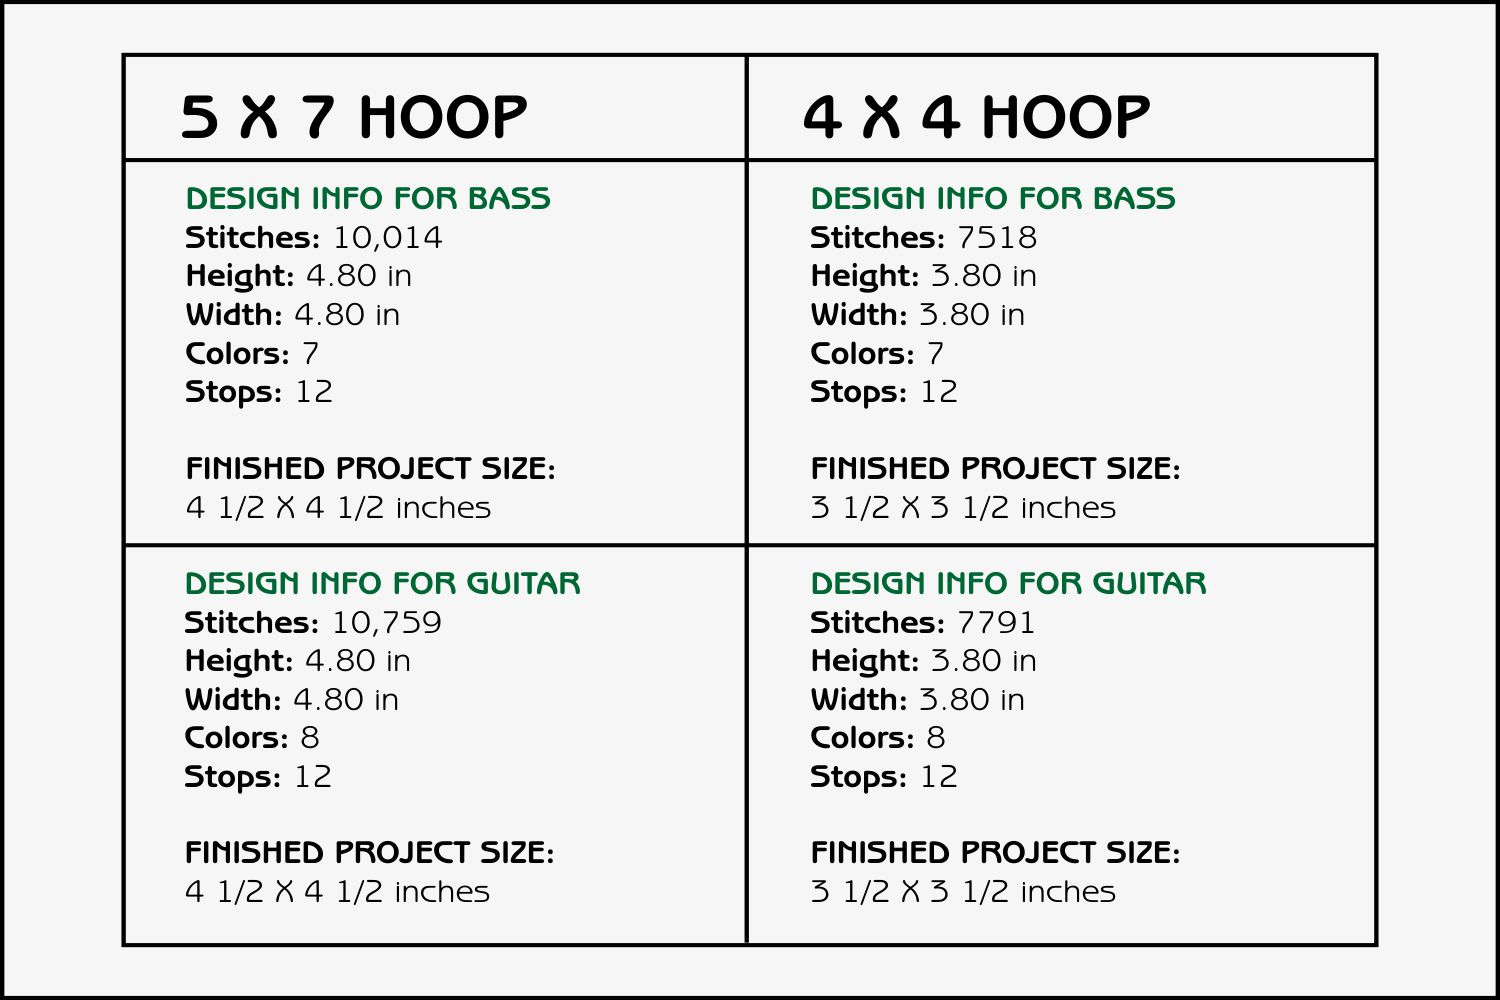 Guitars Coasters - 4 x 4 and 5 x 7 Hoops example image 3